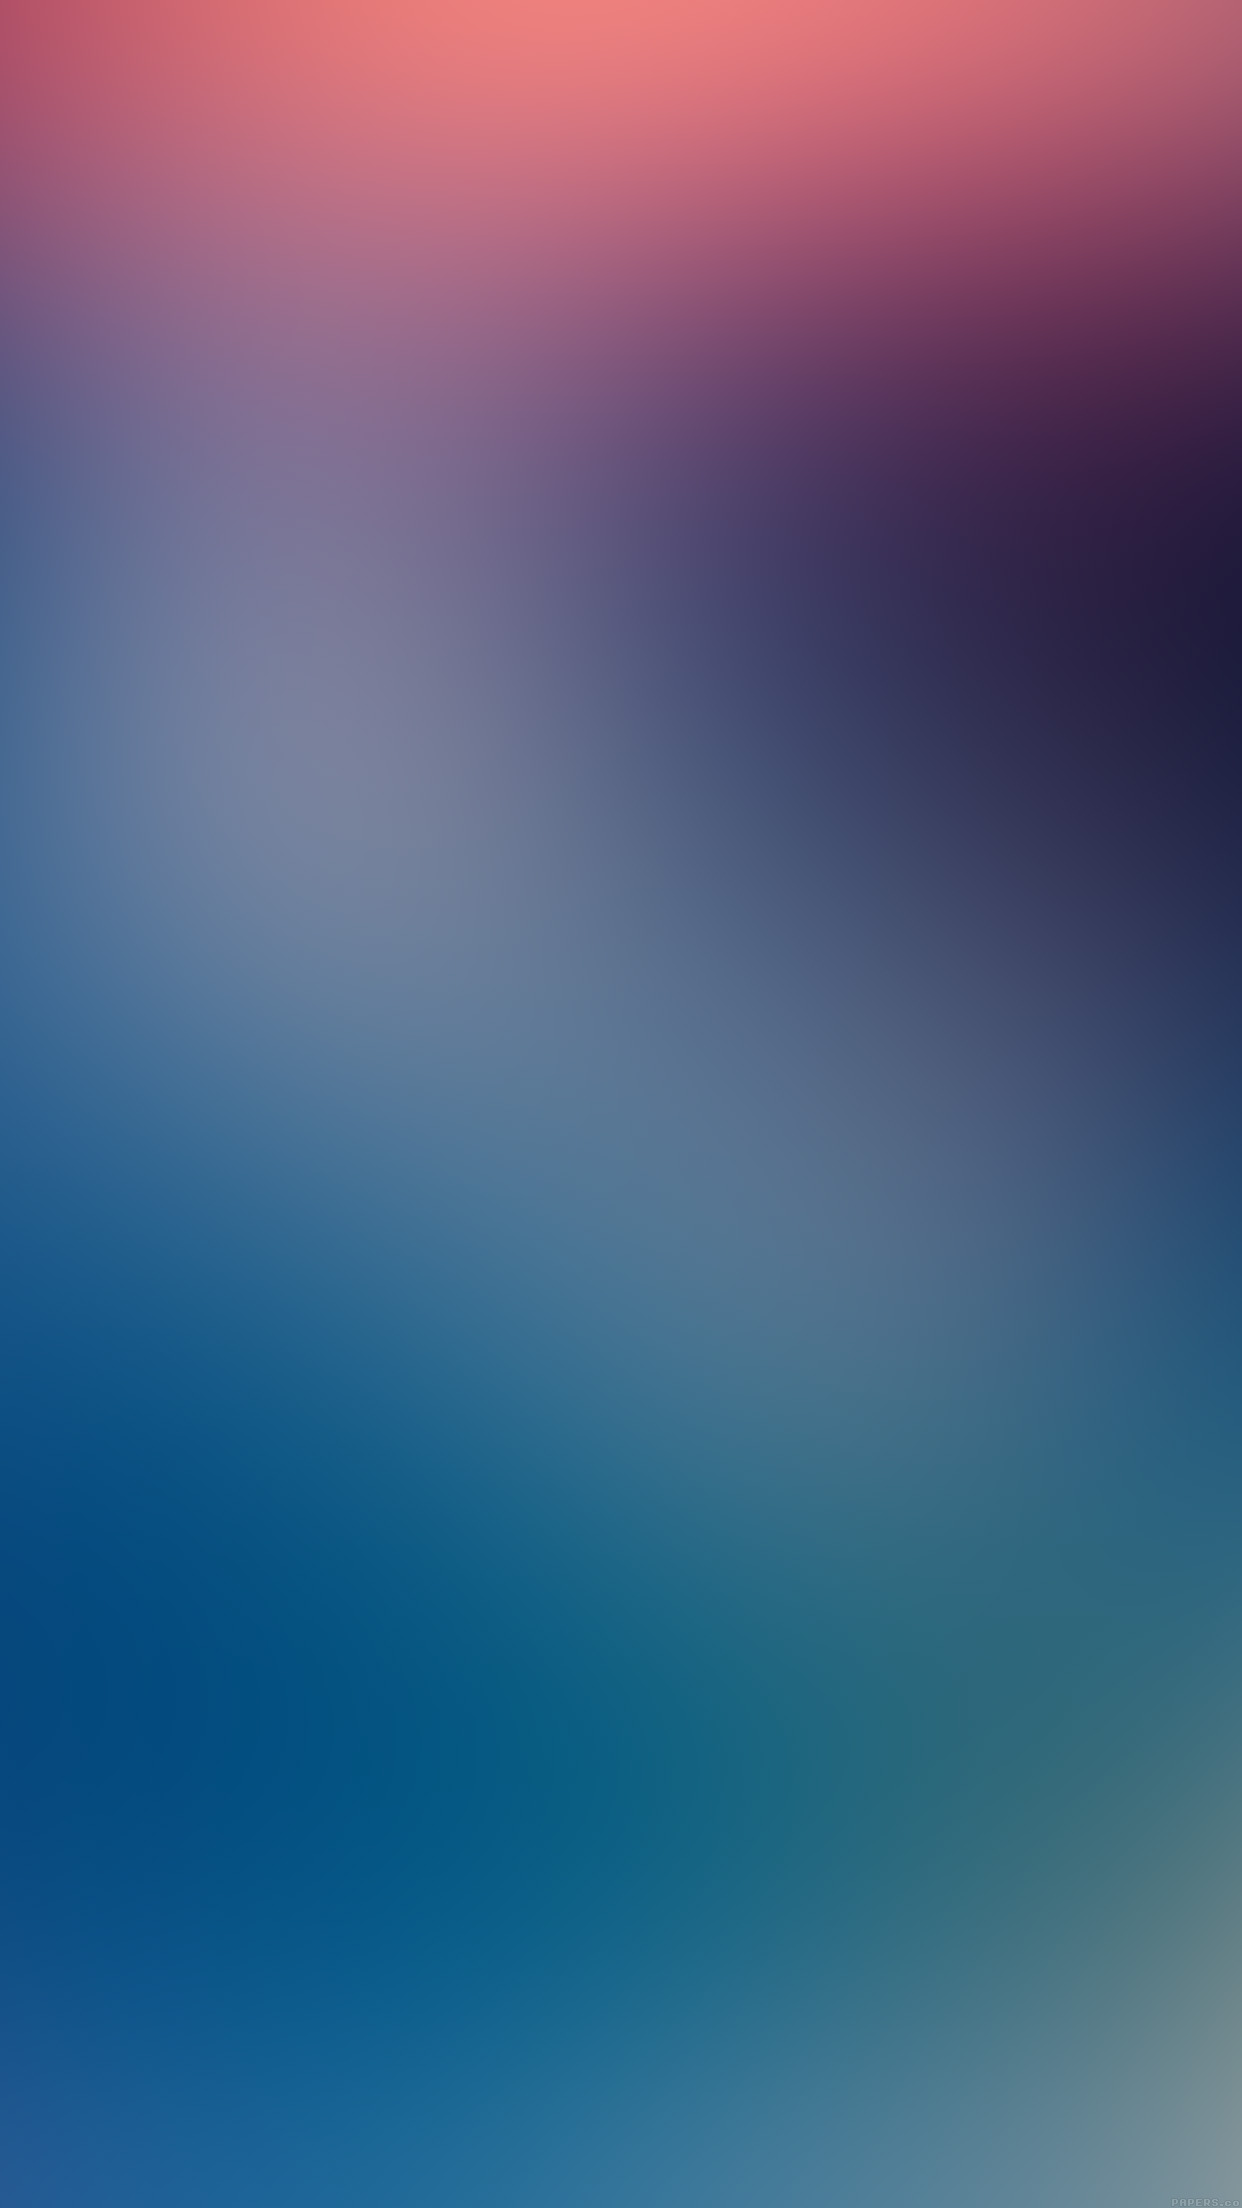 gradient wallpapers iphone 5s-#42